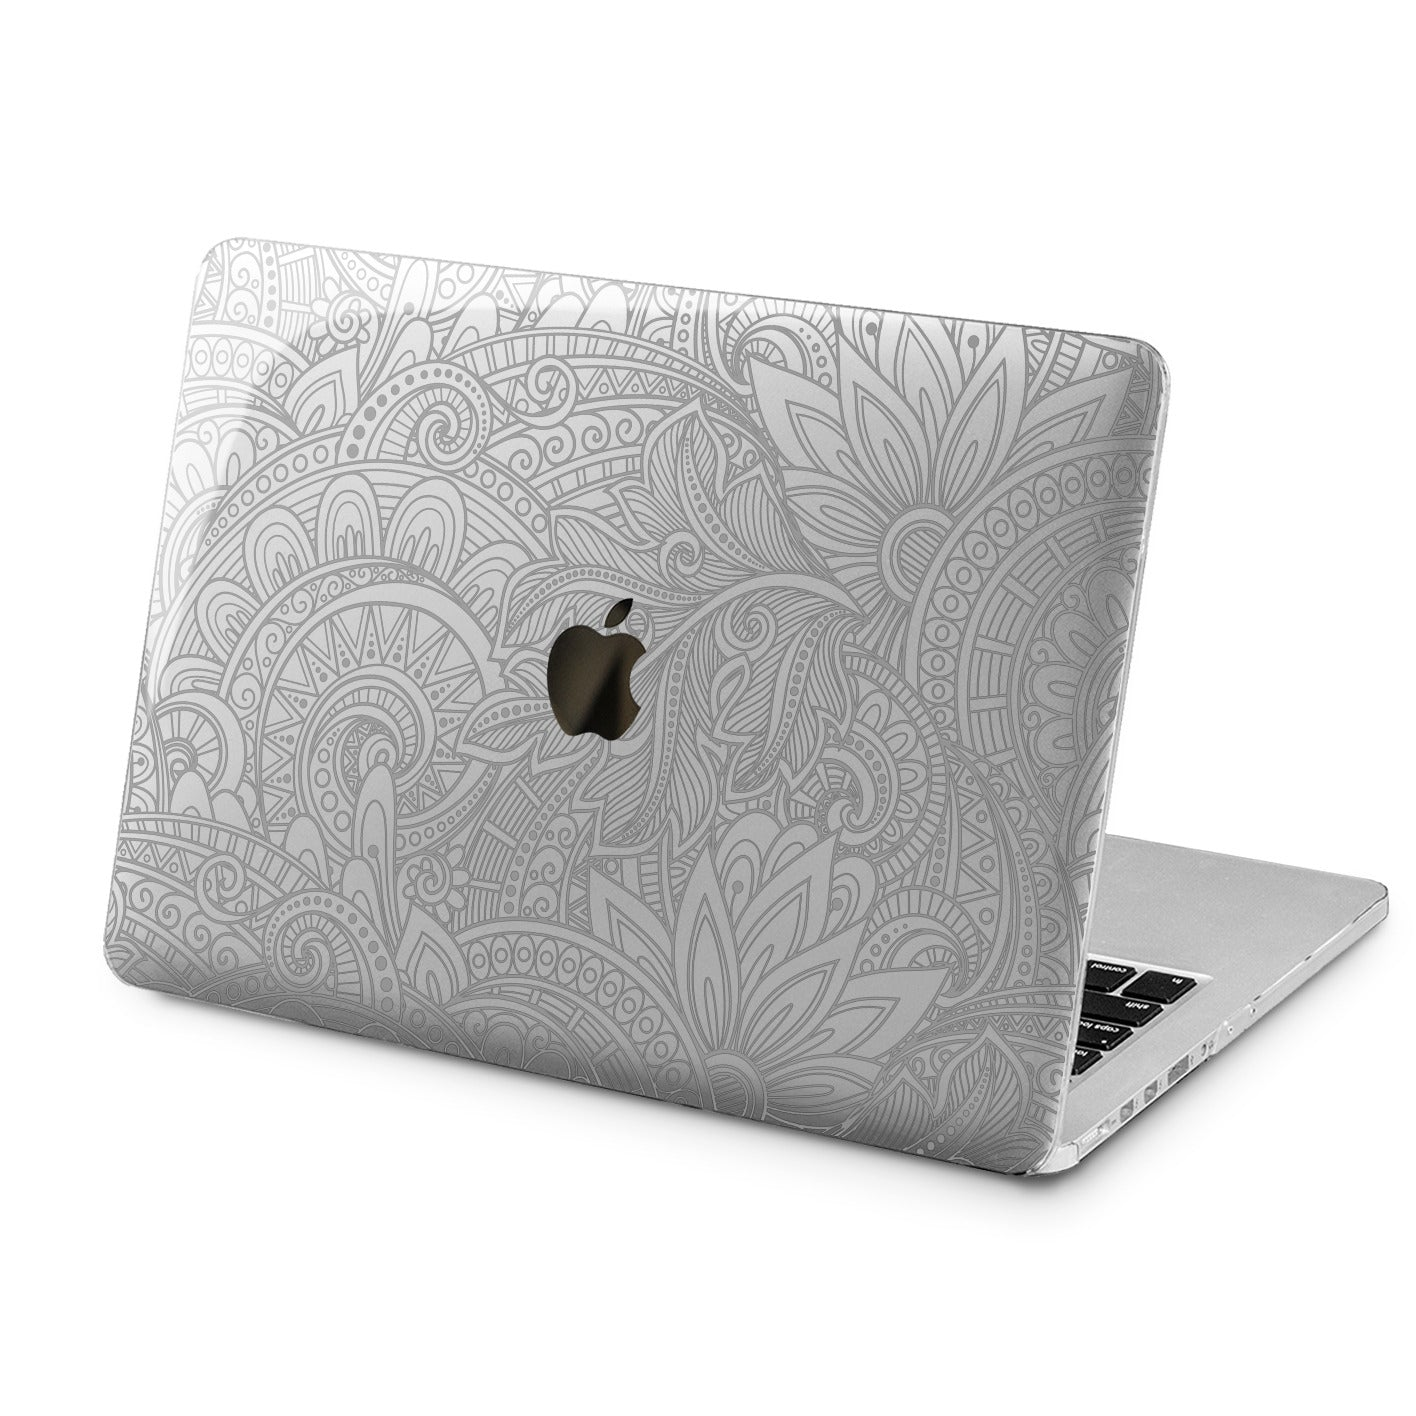 Lex Altern Lex Altern Mandala Lotus Theme Case for your Laptop Apple Macbook.